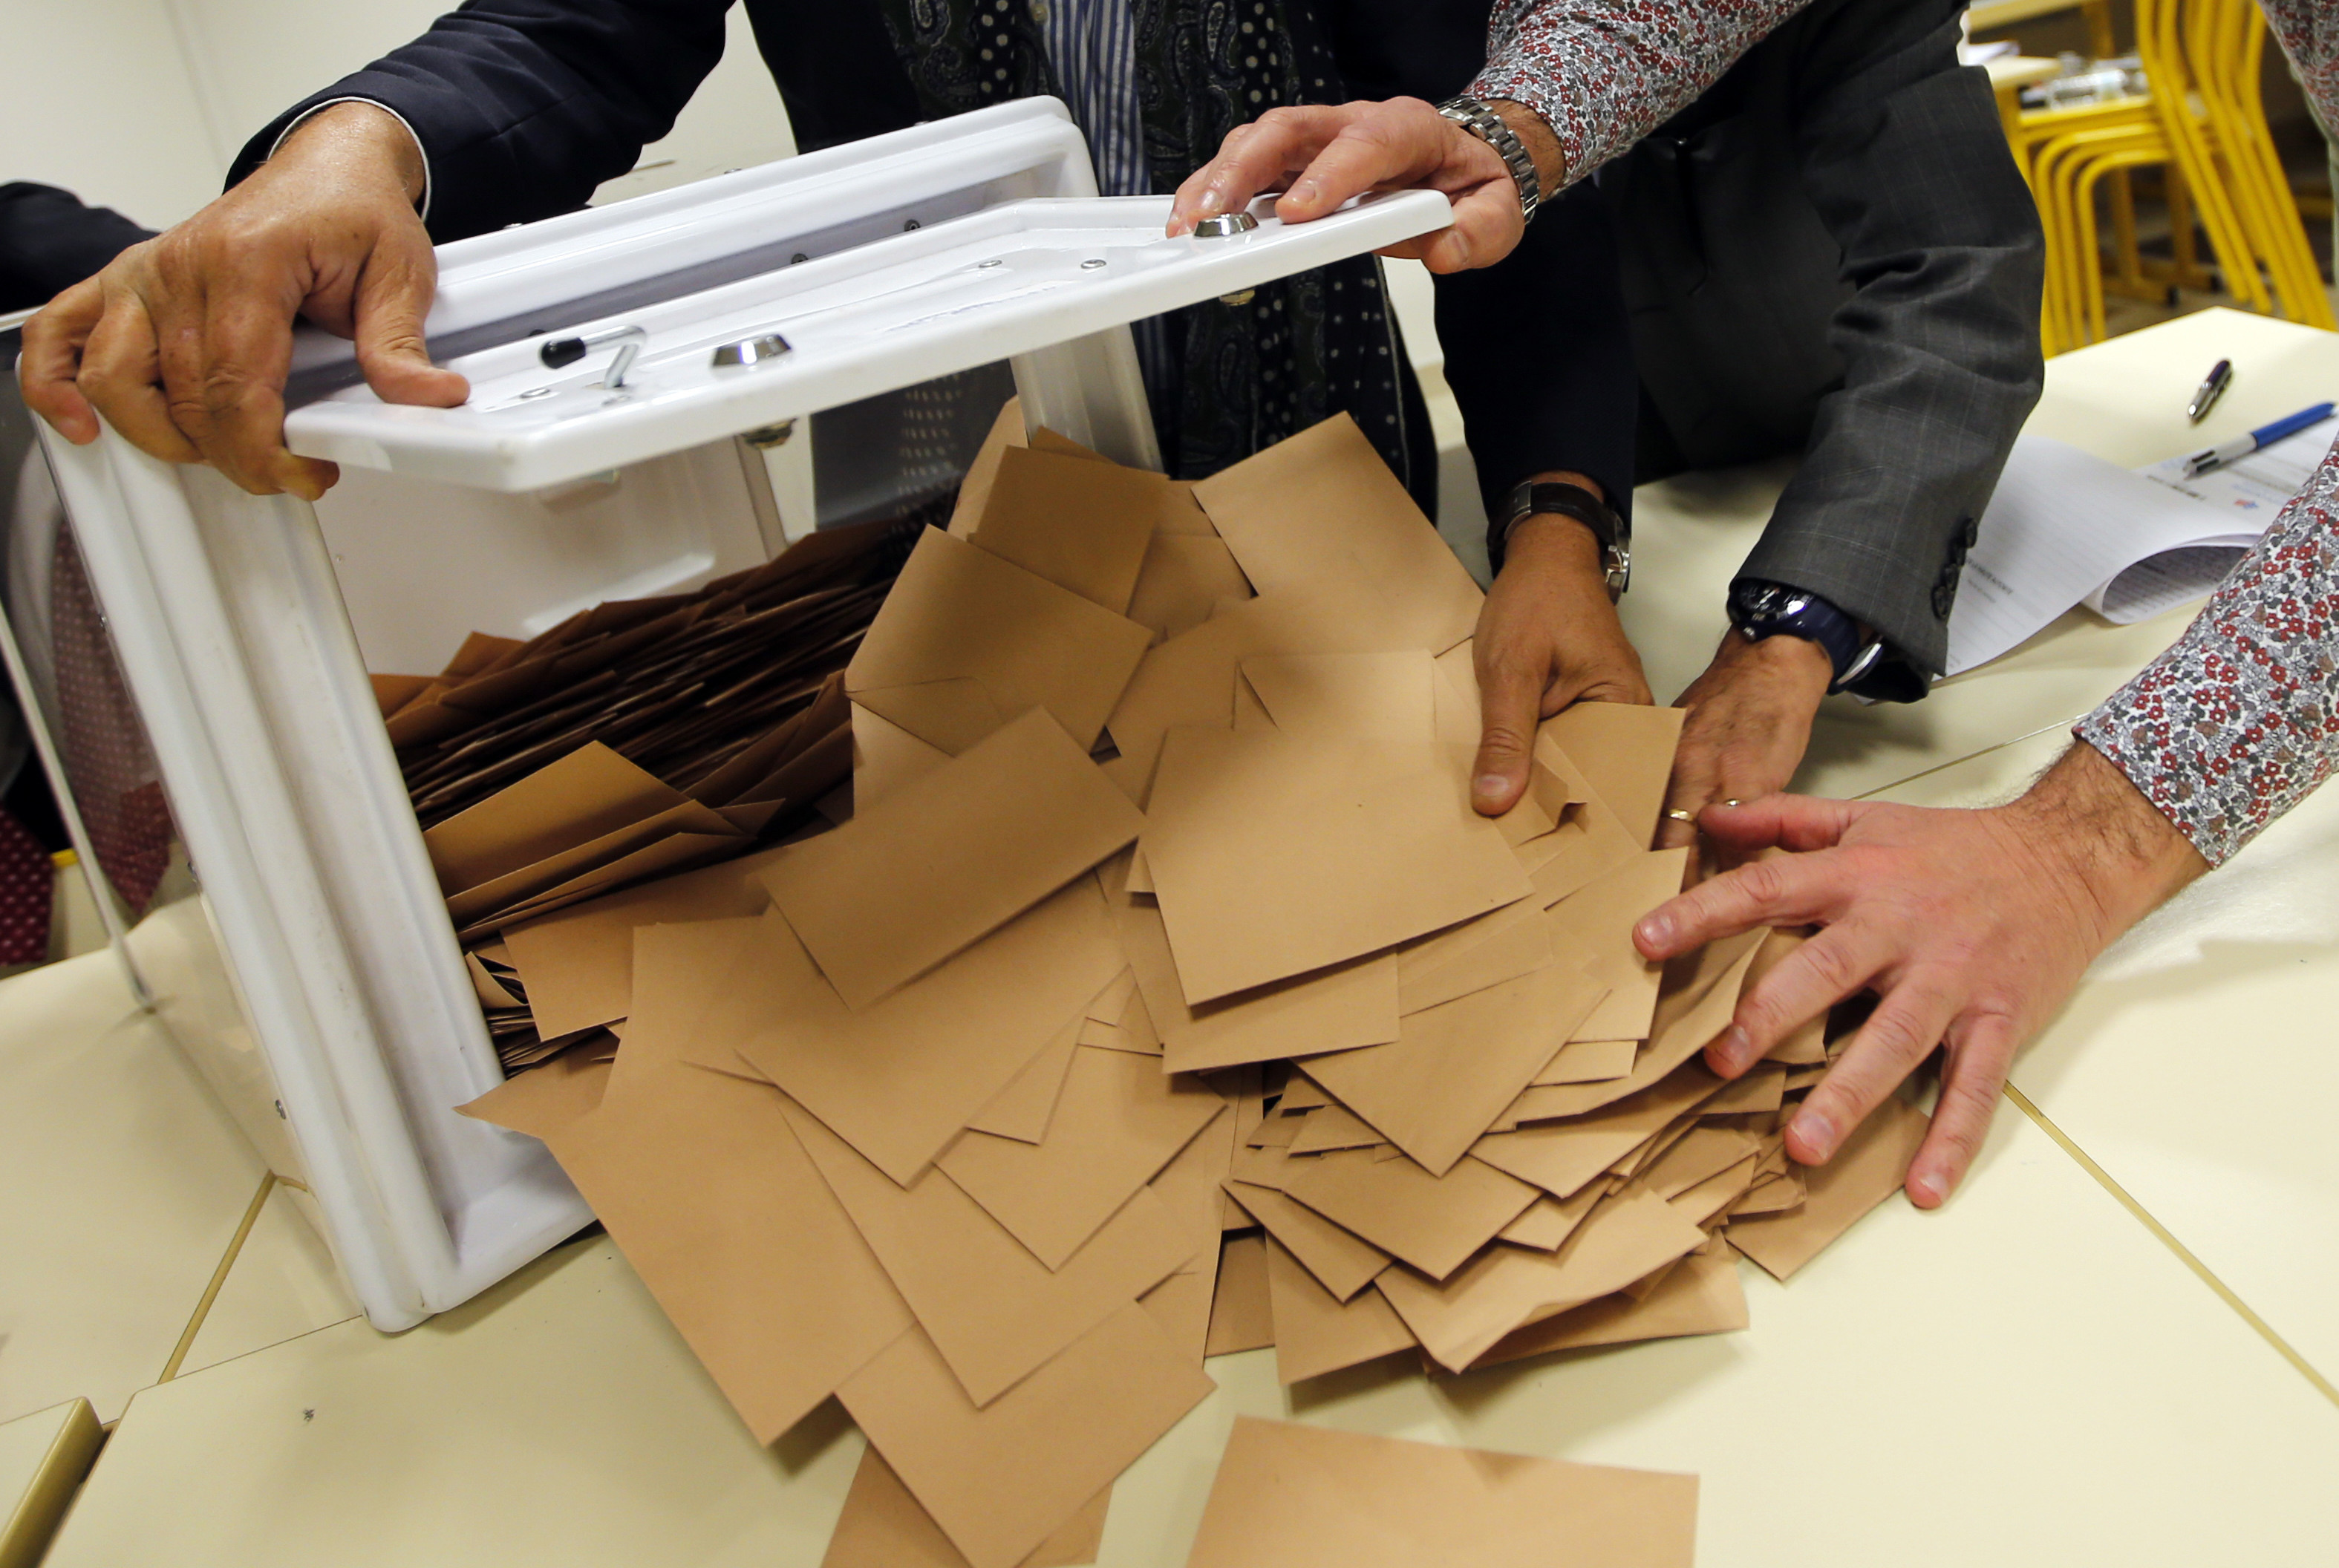 Officials gather ballots in the second round vote of the French center-right presidential primary election at a polling station in Marseille, France, November 27, 2016.